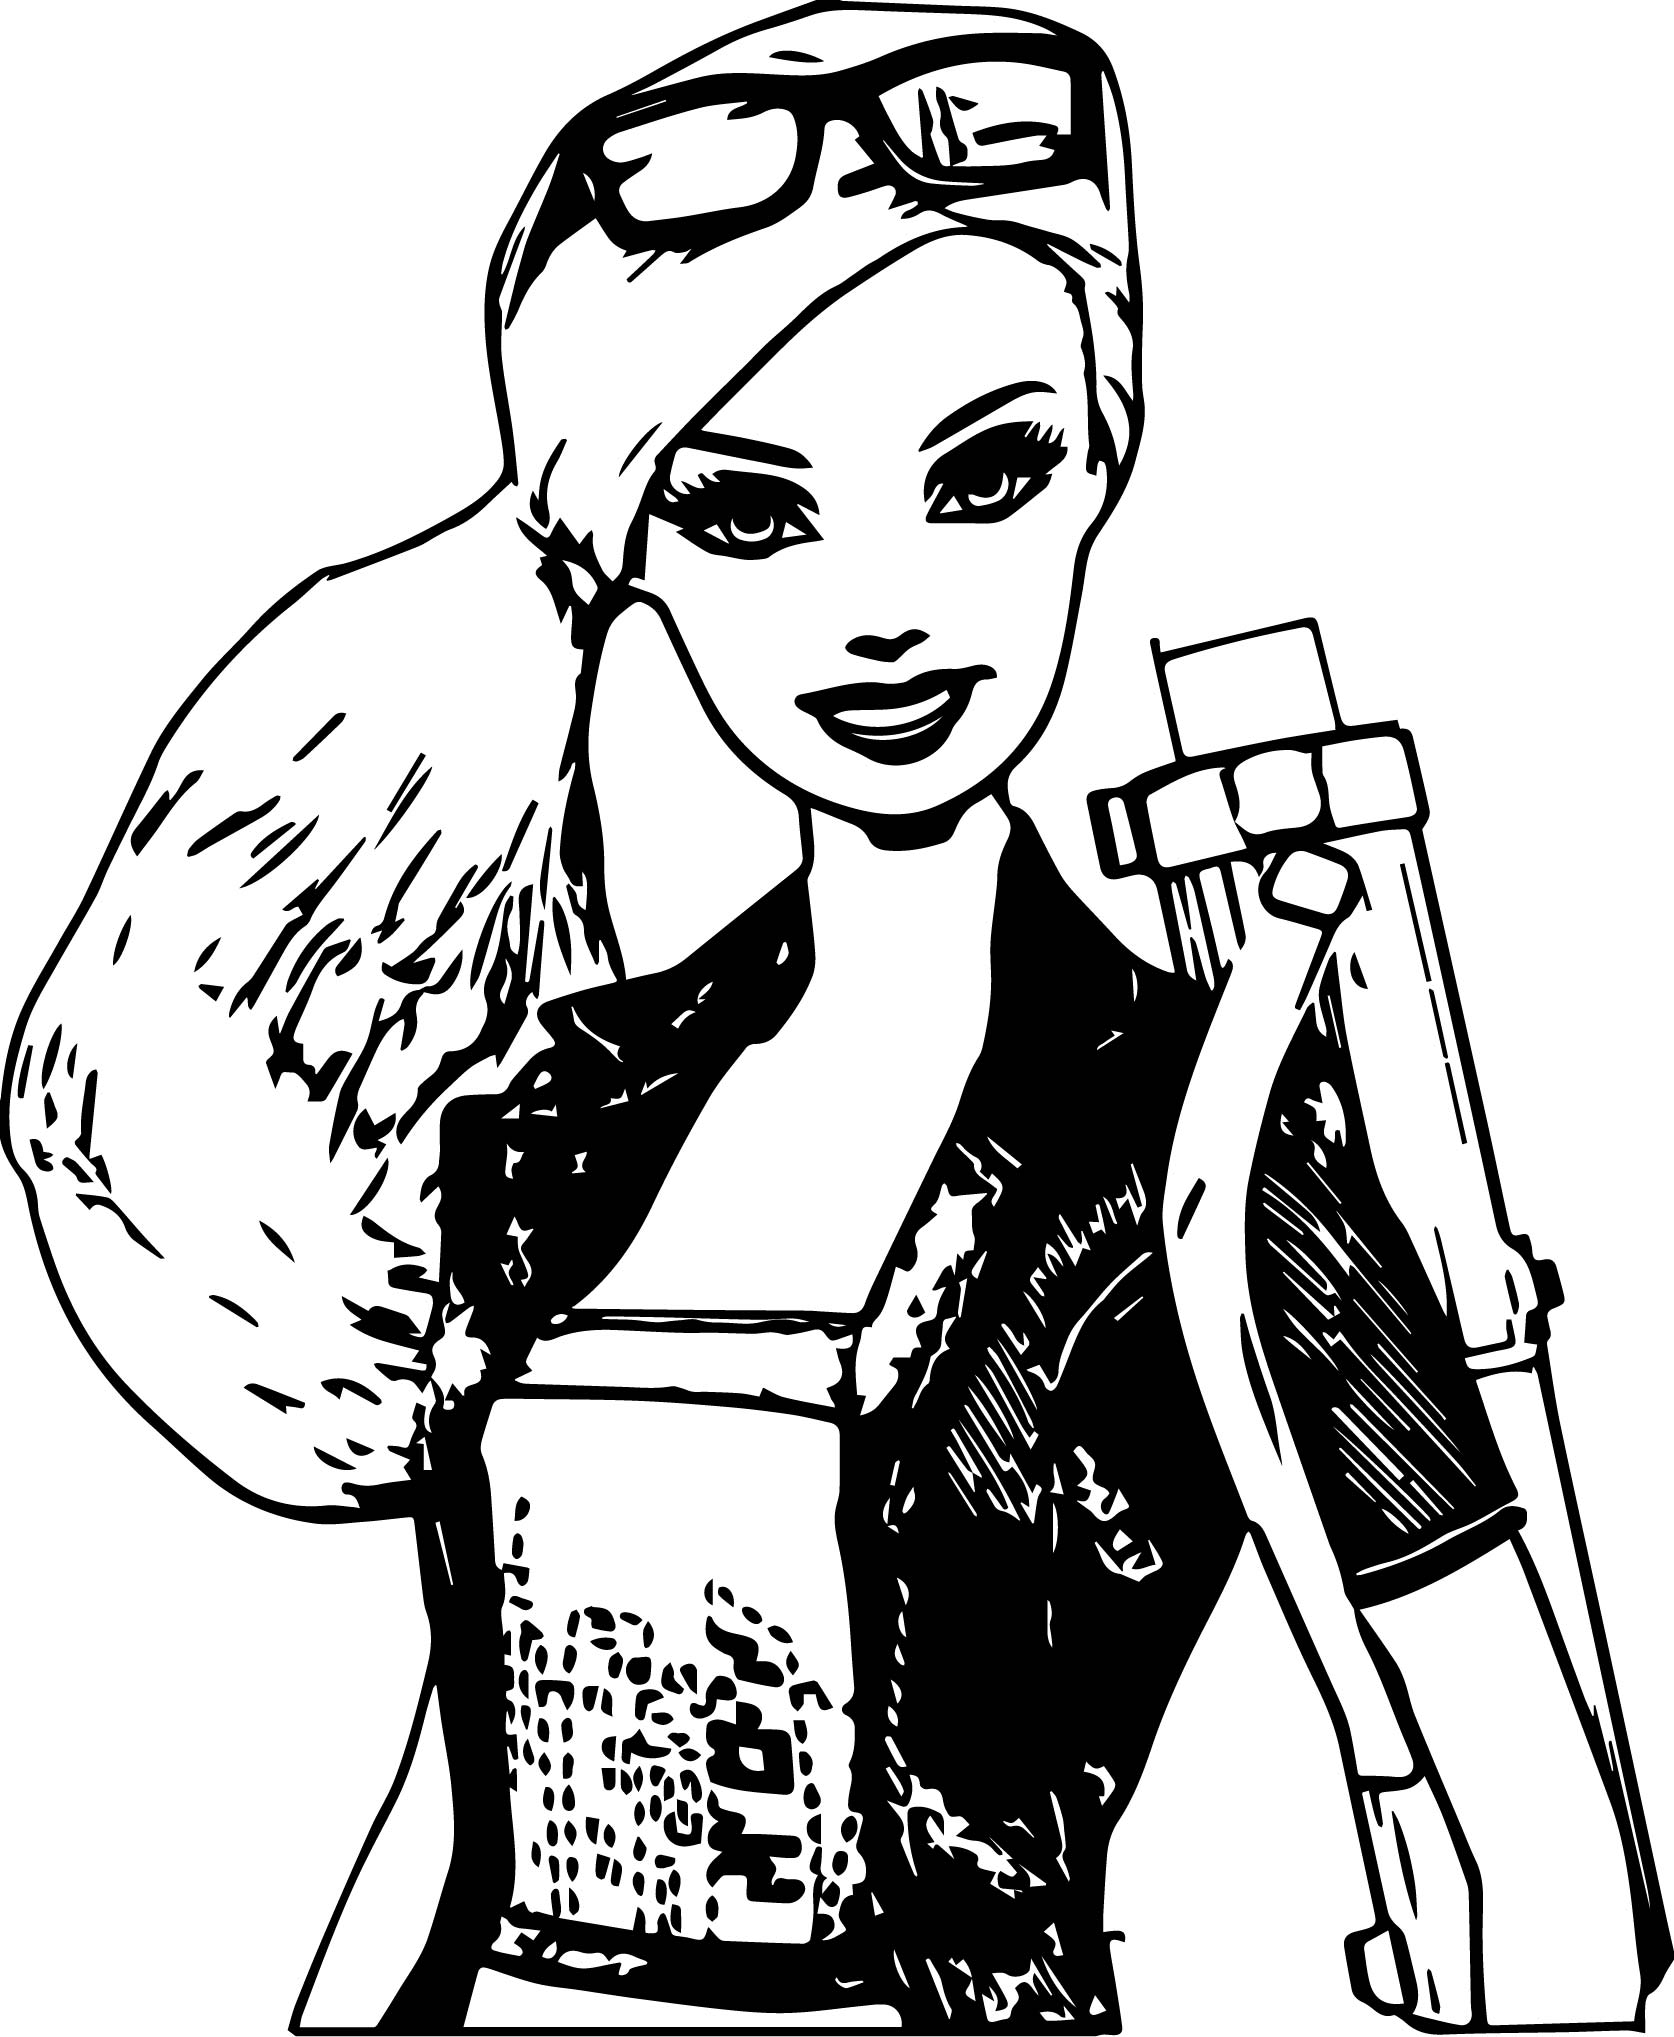 Big Barbie Crop Coloring Page